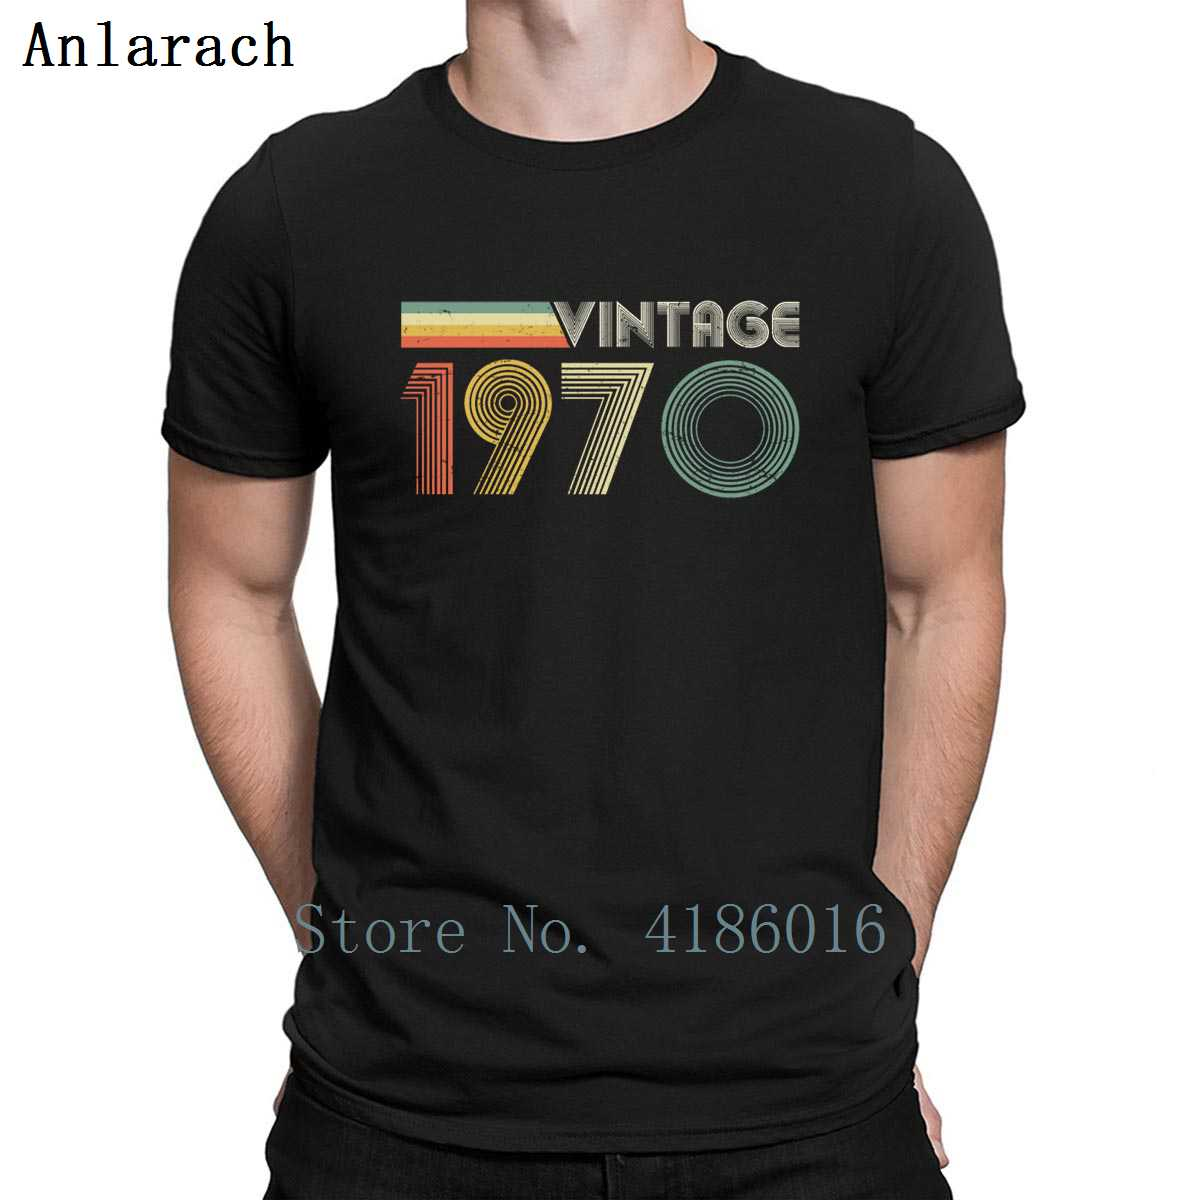 <font><b>Vintage</b></font> <font><b>1970</b></font> T Shirt Pattern Cute Fashion Short Sleeve Streetwear Summer Style Crew Neck Knitted Shirt image